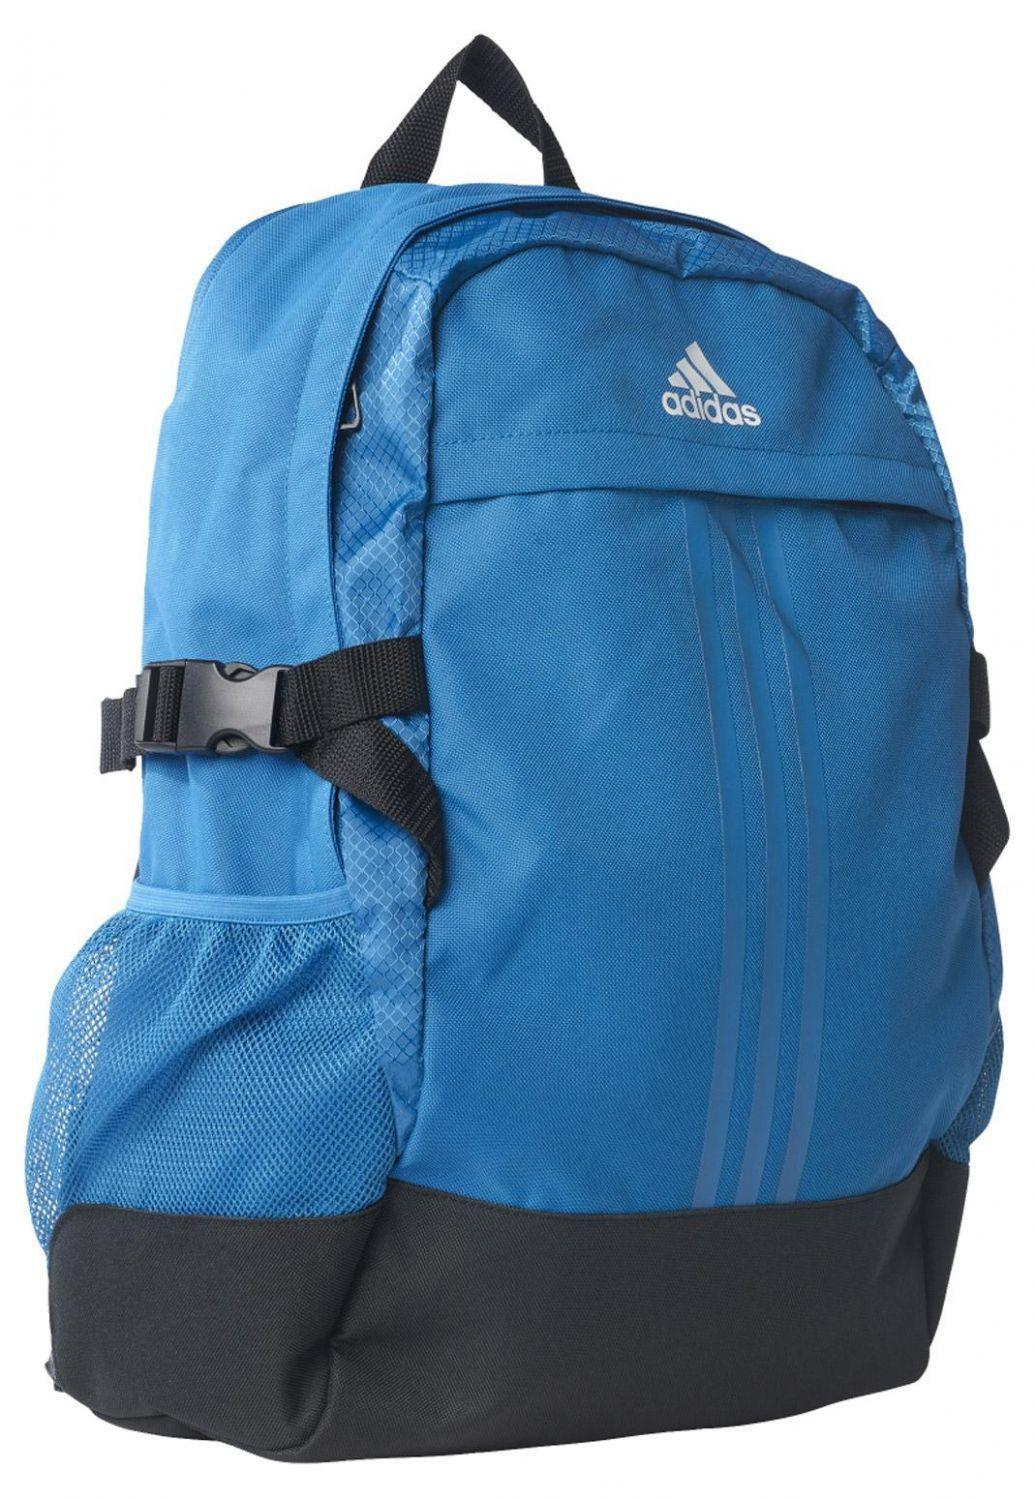 adidas-backpack-power-iii-m-tagesrucksack-farbe-unity-blue-f16-unity-blue-f16-white-